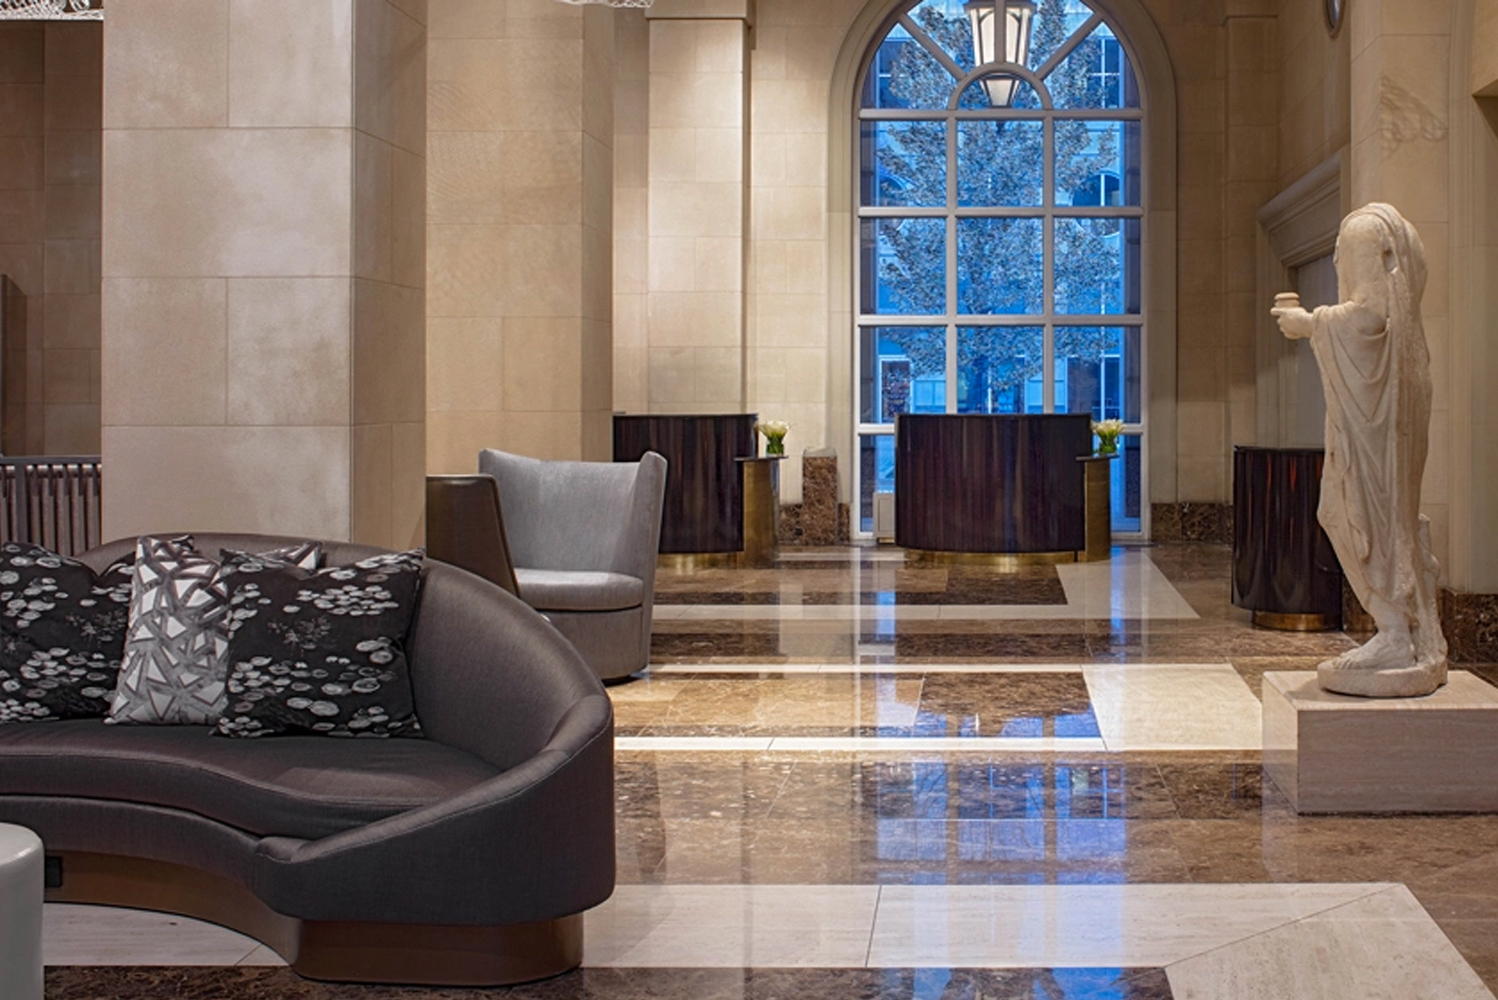 Hotel Crescent Court – a property located in Dallas' Uptown – completed a year-long $33 million overhaul.